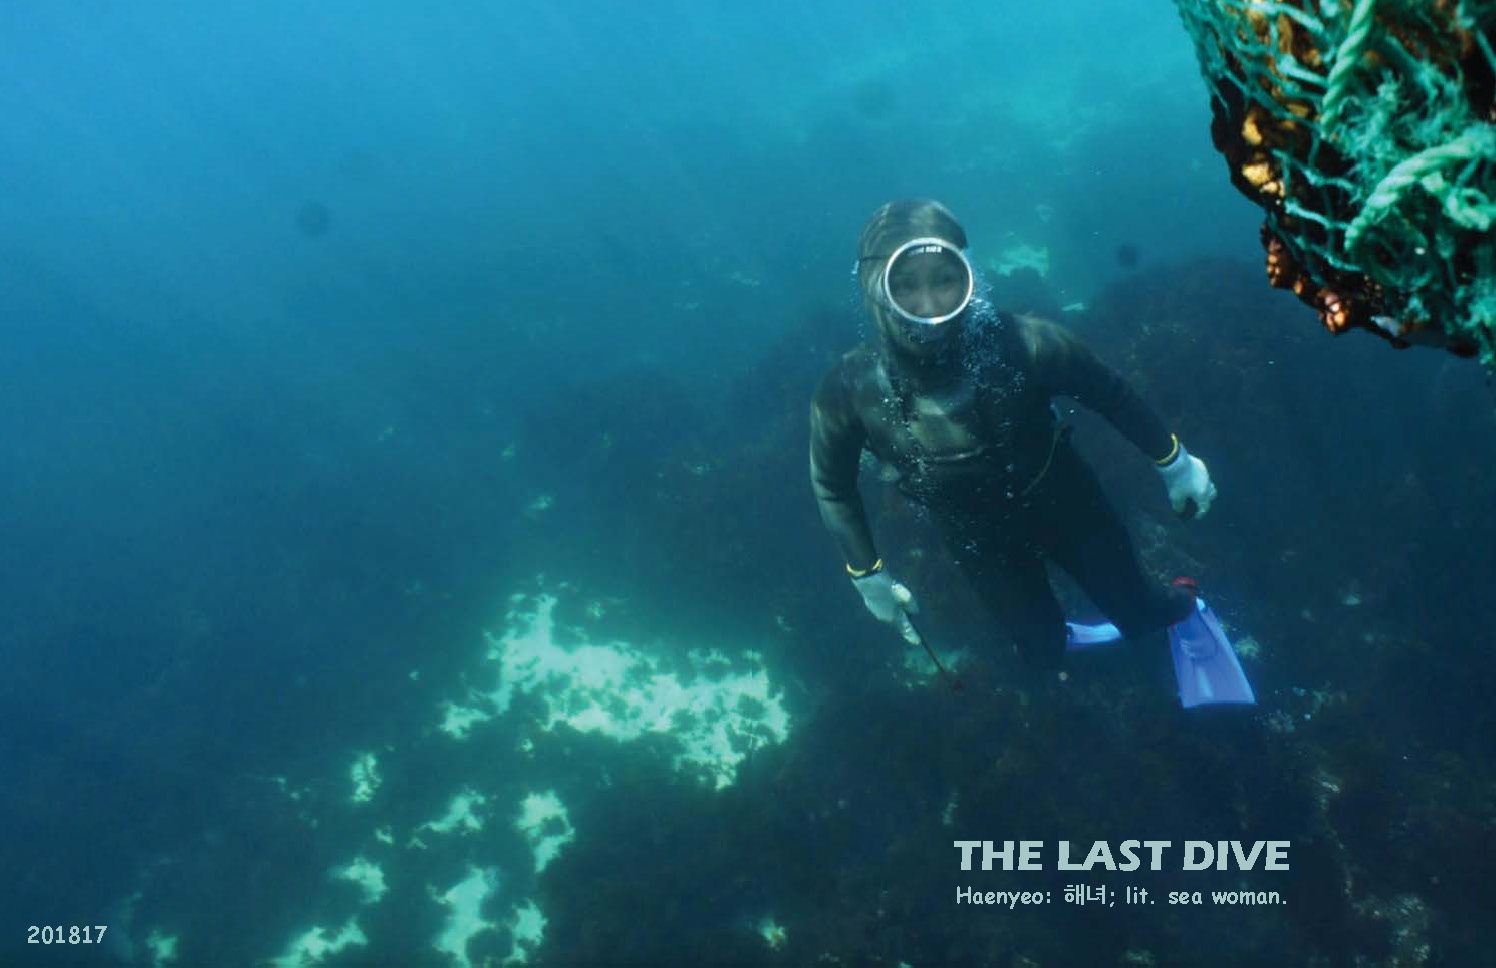 The Last Dive - 2018 XPLORE Winner, Hieu Nguyen